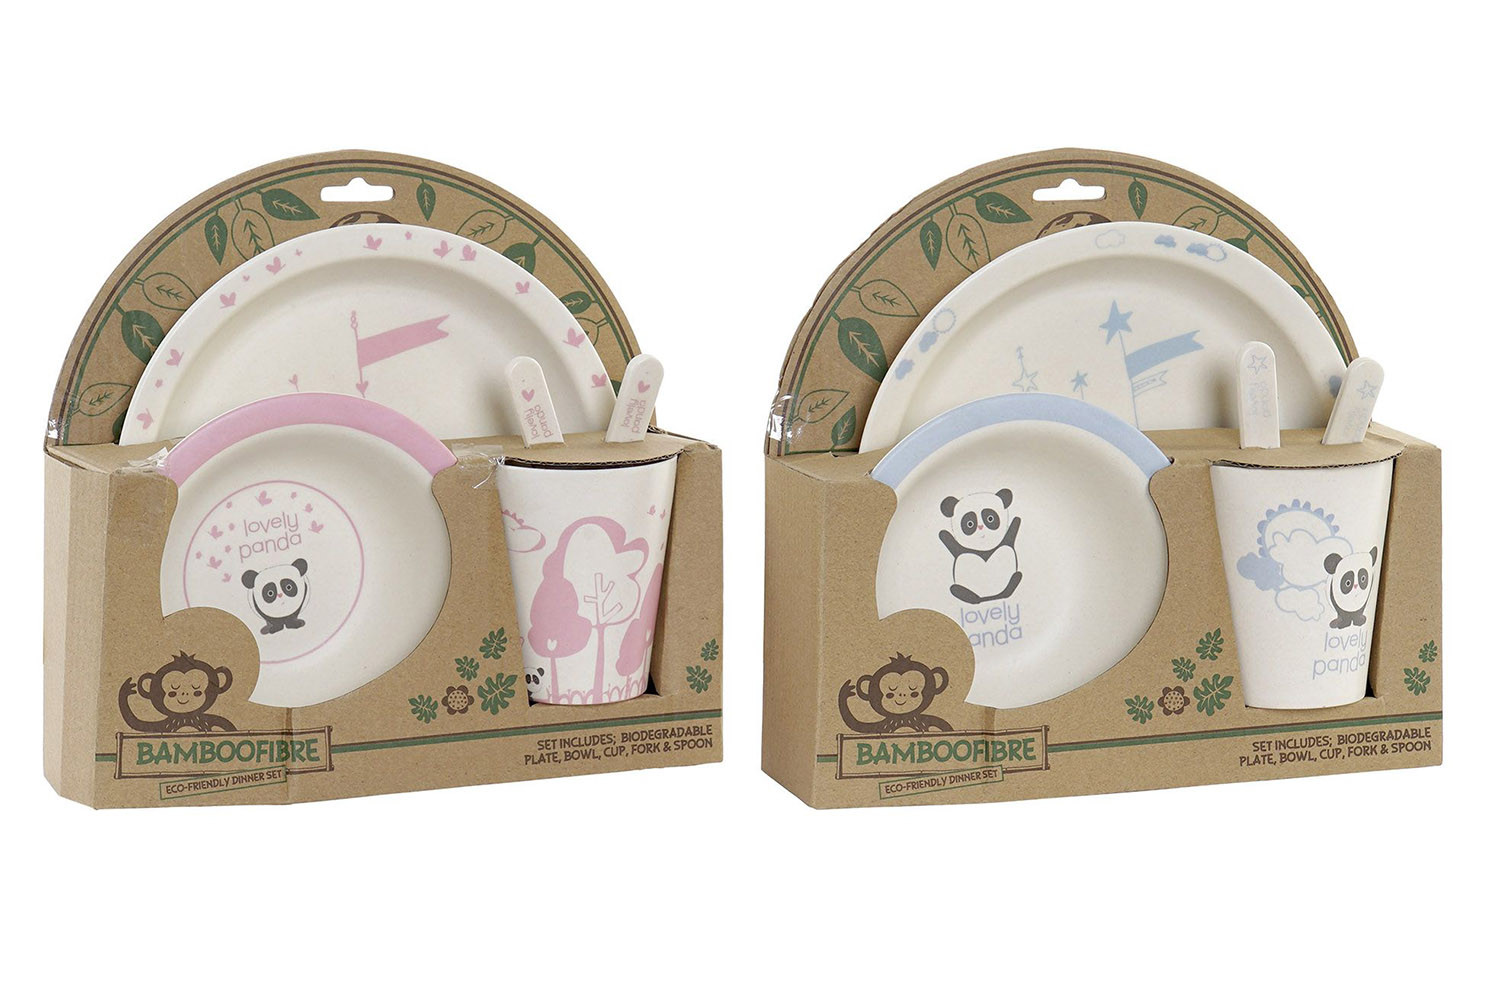 Cutlery Set of 5 Products, Bamboo, Recycled, Reusable, Animal Design Panda, Product Child 25x9,5x24cm - Home and More